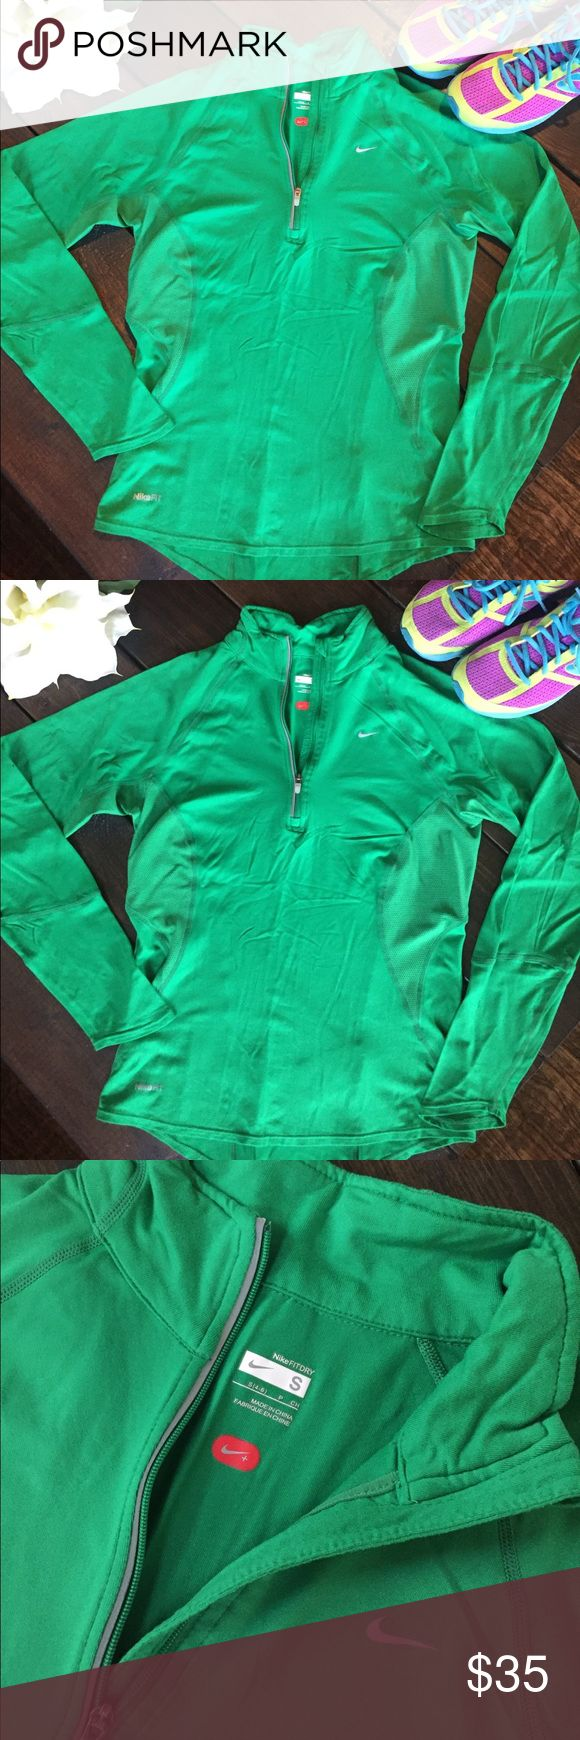 Kelly Green Nike Fit Dry Running Jacket Beautiful Kelly green Nike Running Jacket. Quarter zip light jacket with dri fit moisture wicking fabric. Mesh lining on sides and under arms for ventilation. Form fitting with reflective strips for safety. Reposhin